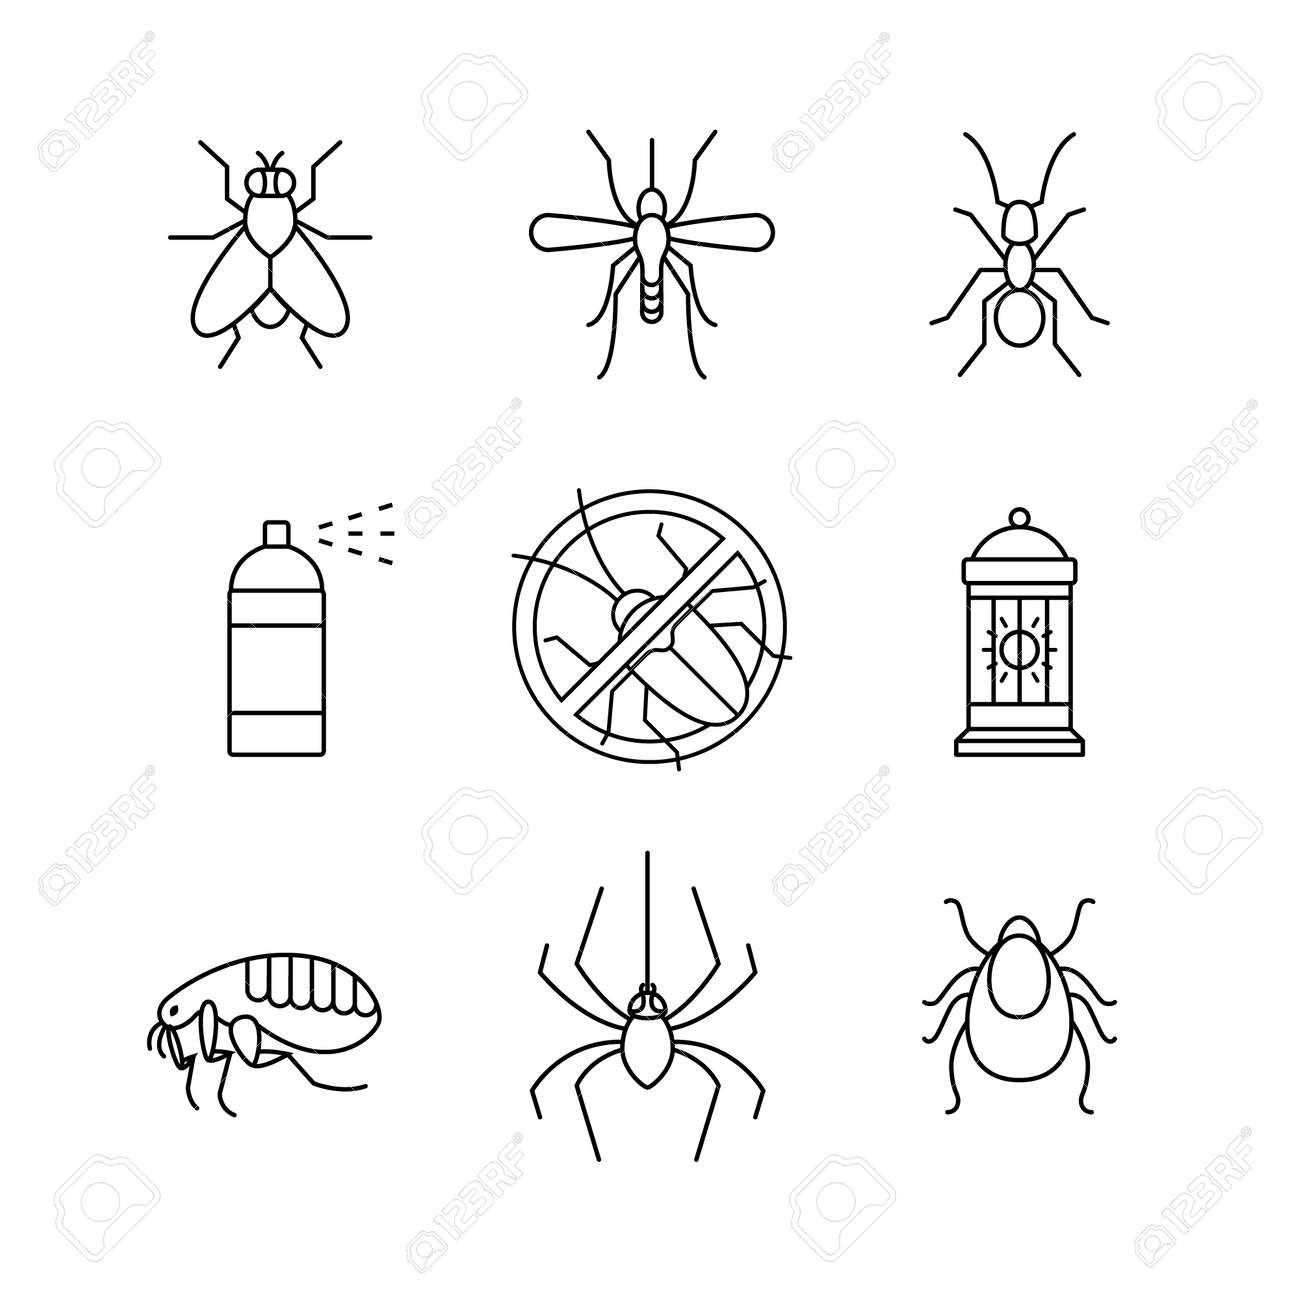 Insects control, anti pest emblem, insecticide, thin line art icons set. Modern black symbols isolated on white for infographics or web use. - 52937871